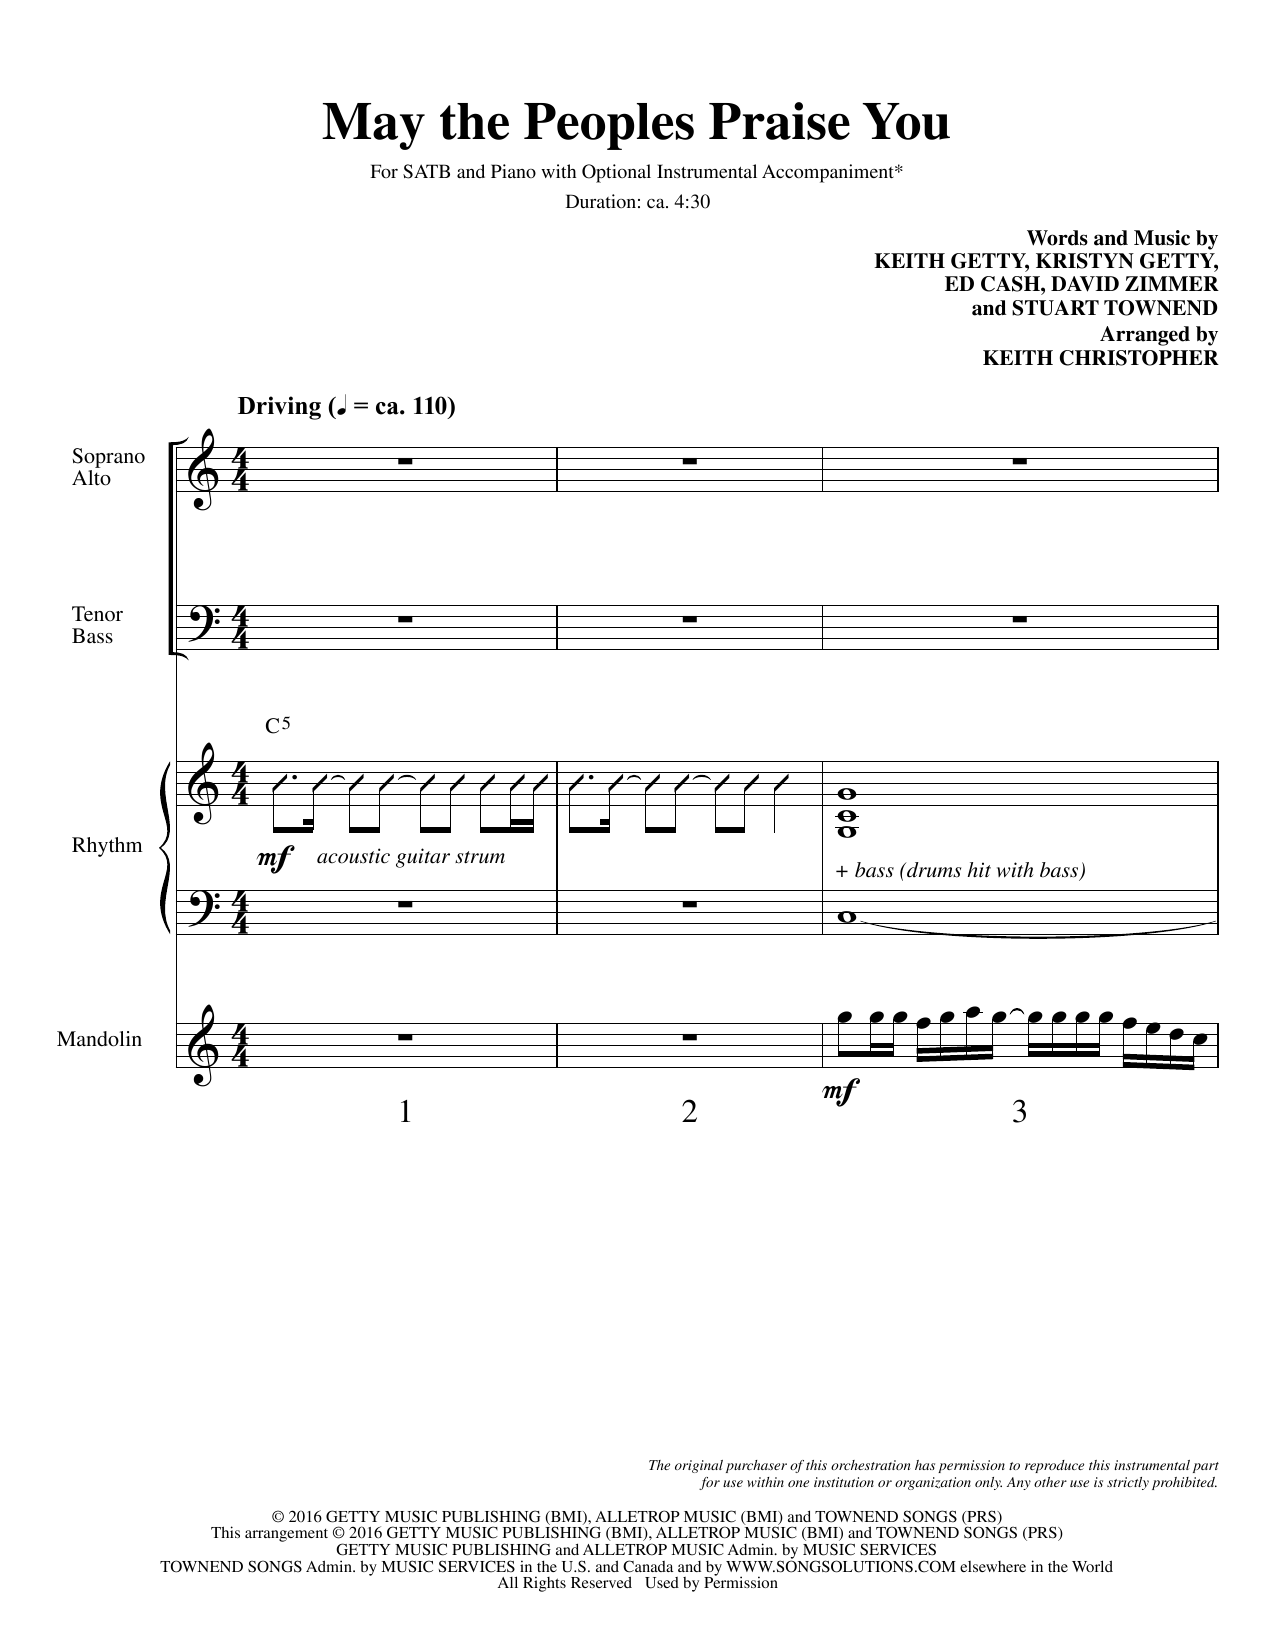 May the Peoples Praise You - Full Score Partition Digitale